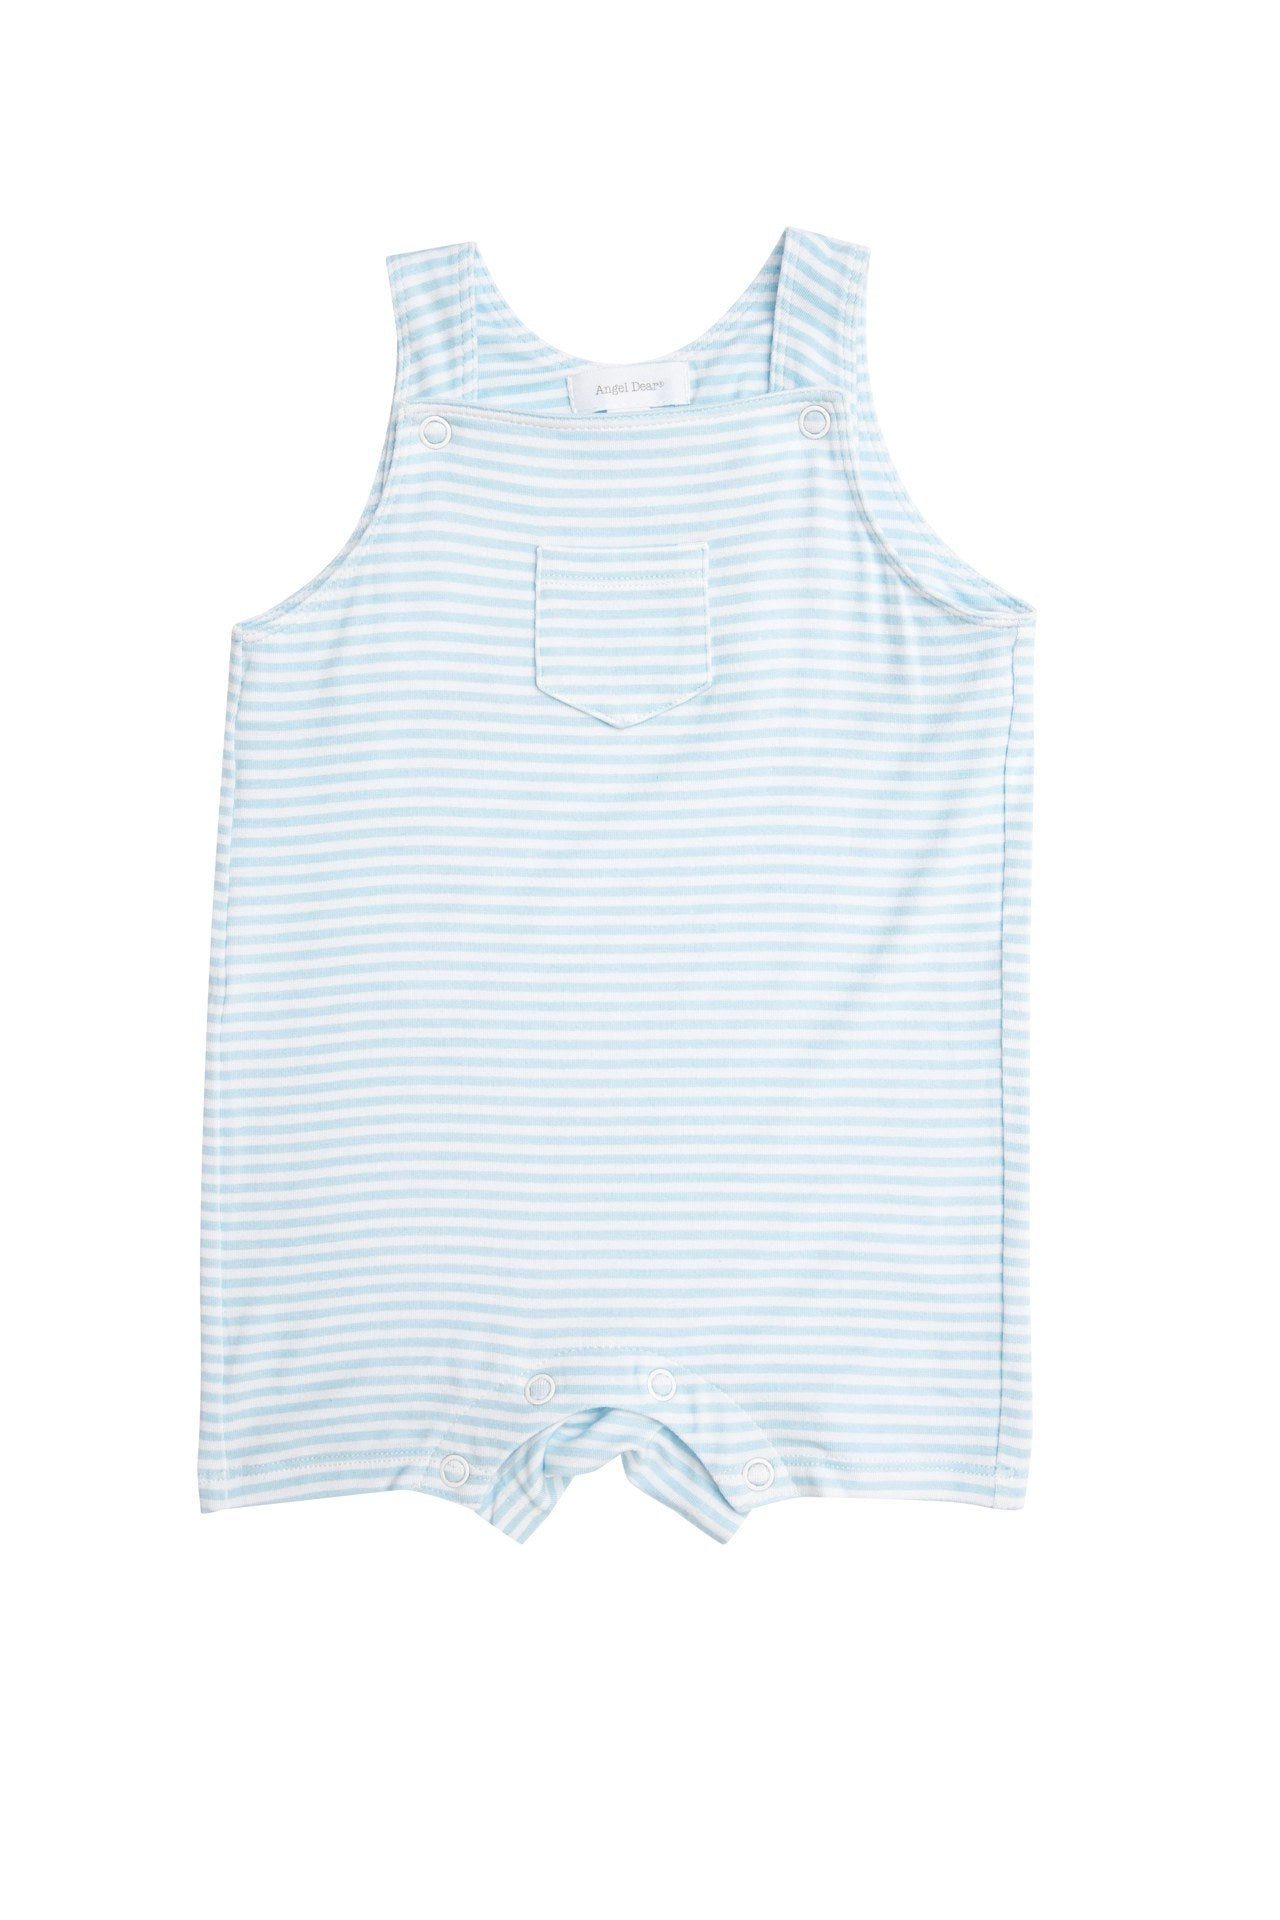 Angel Dear Stripe Blue Overall Shortie